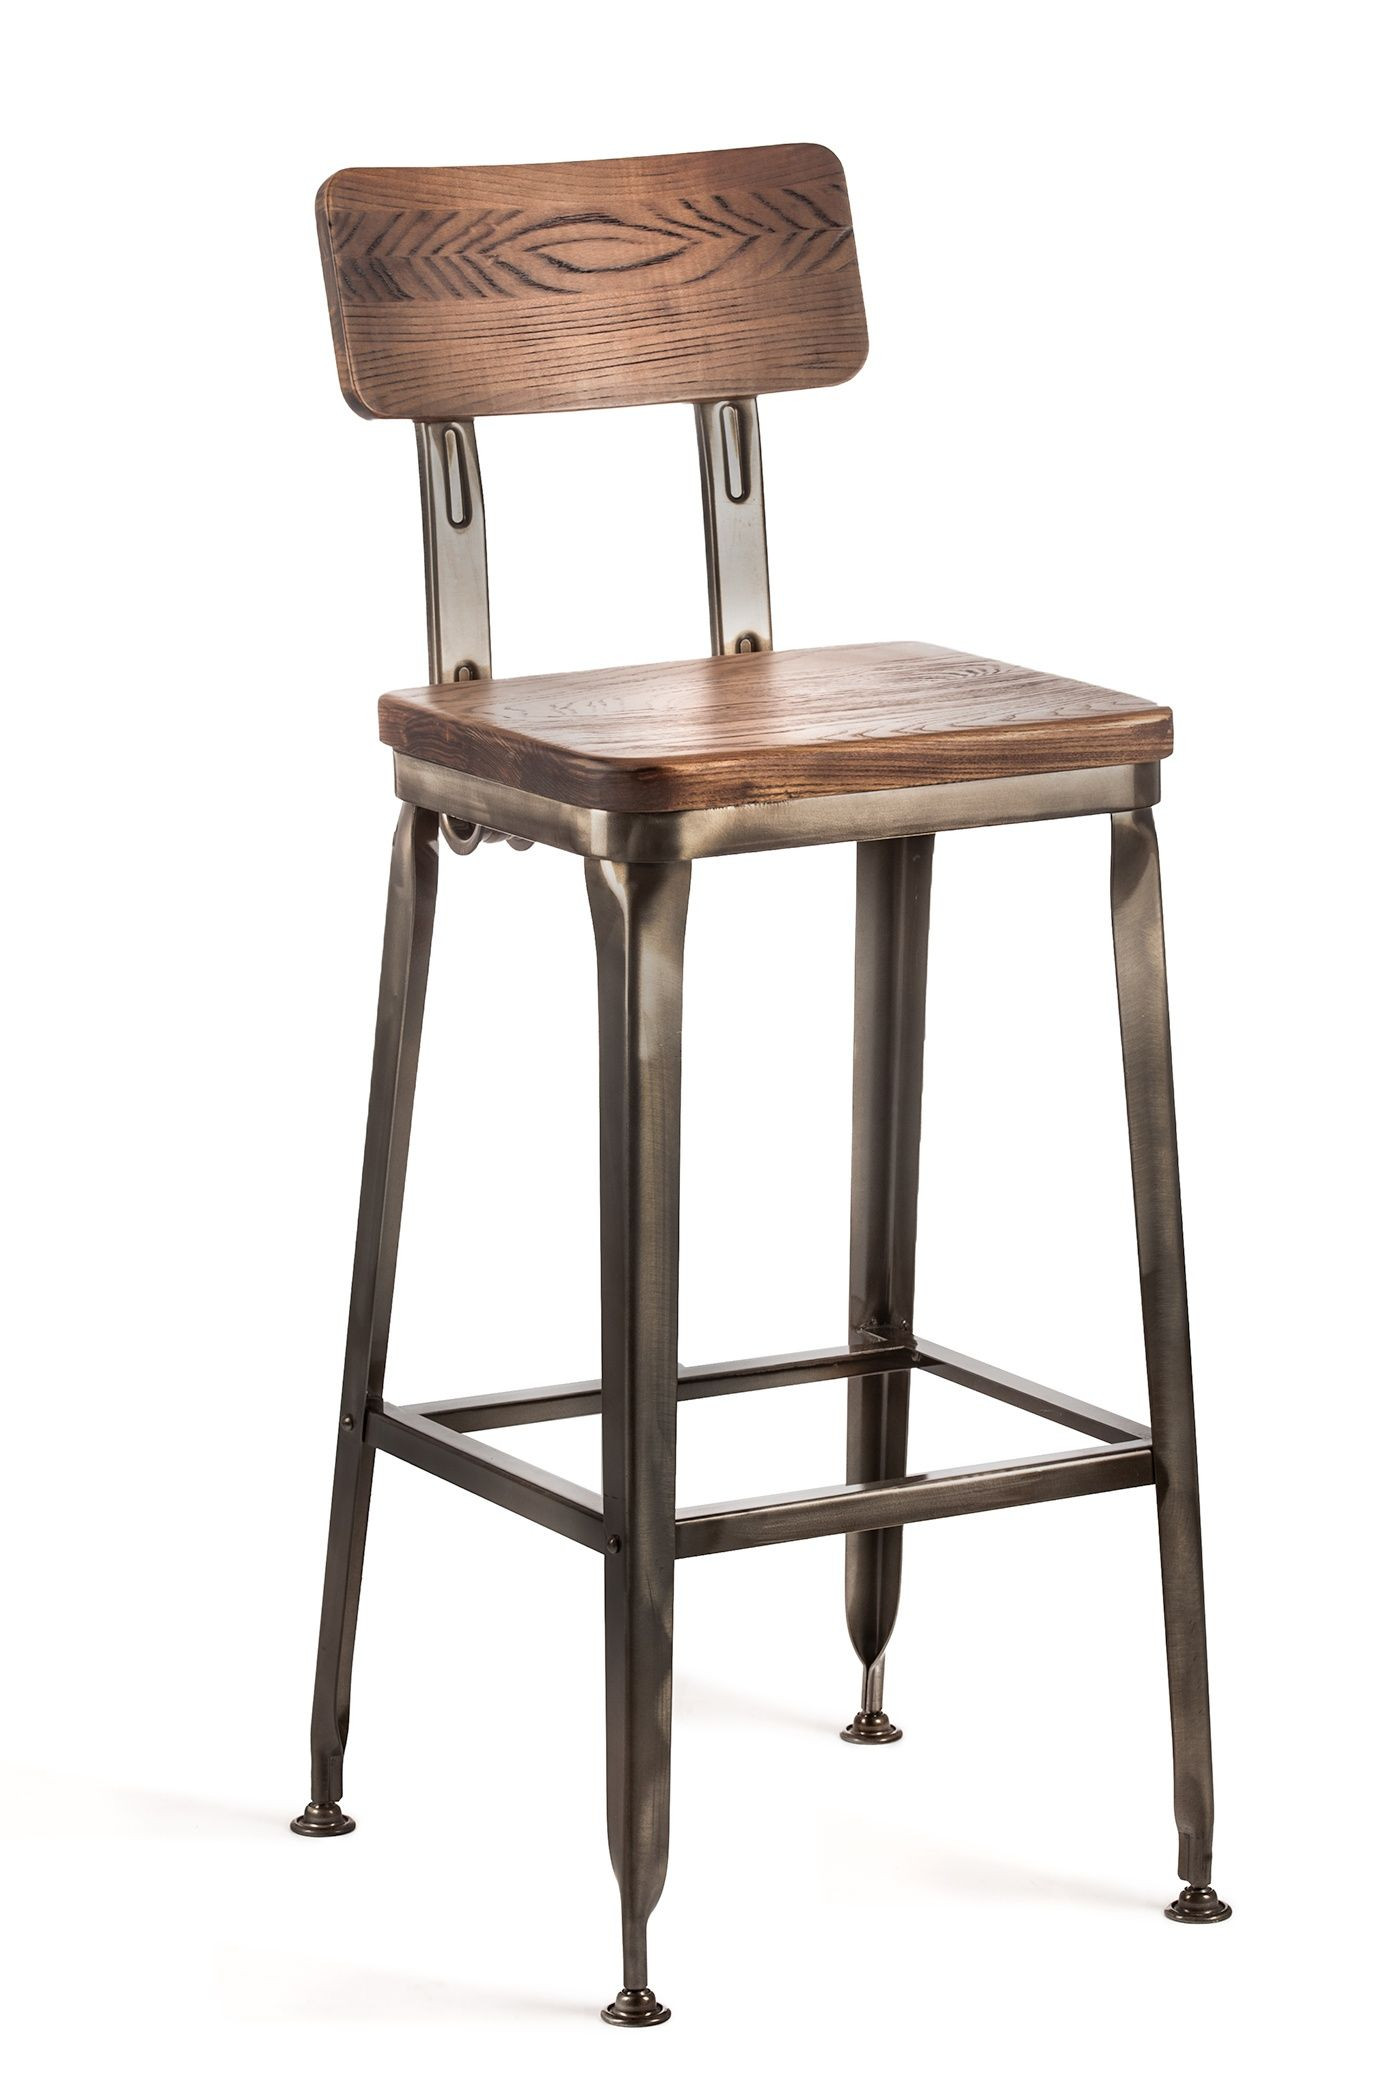 Octane Bar Stool With A Wood Seat Gunmetal With Wood Seat